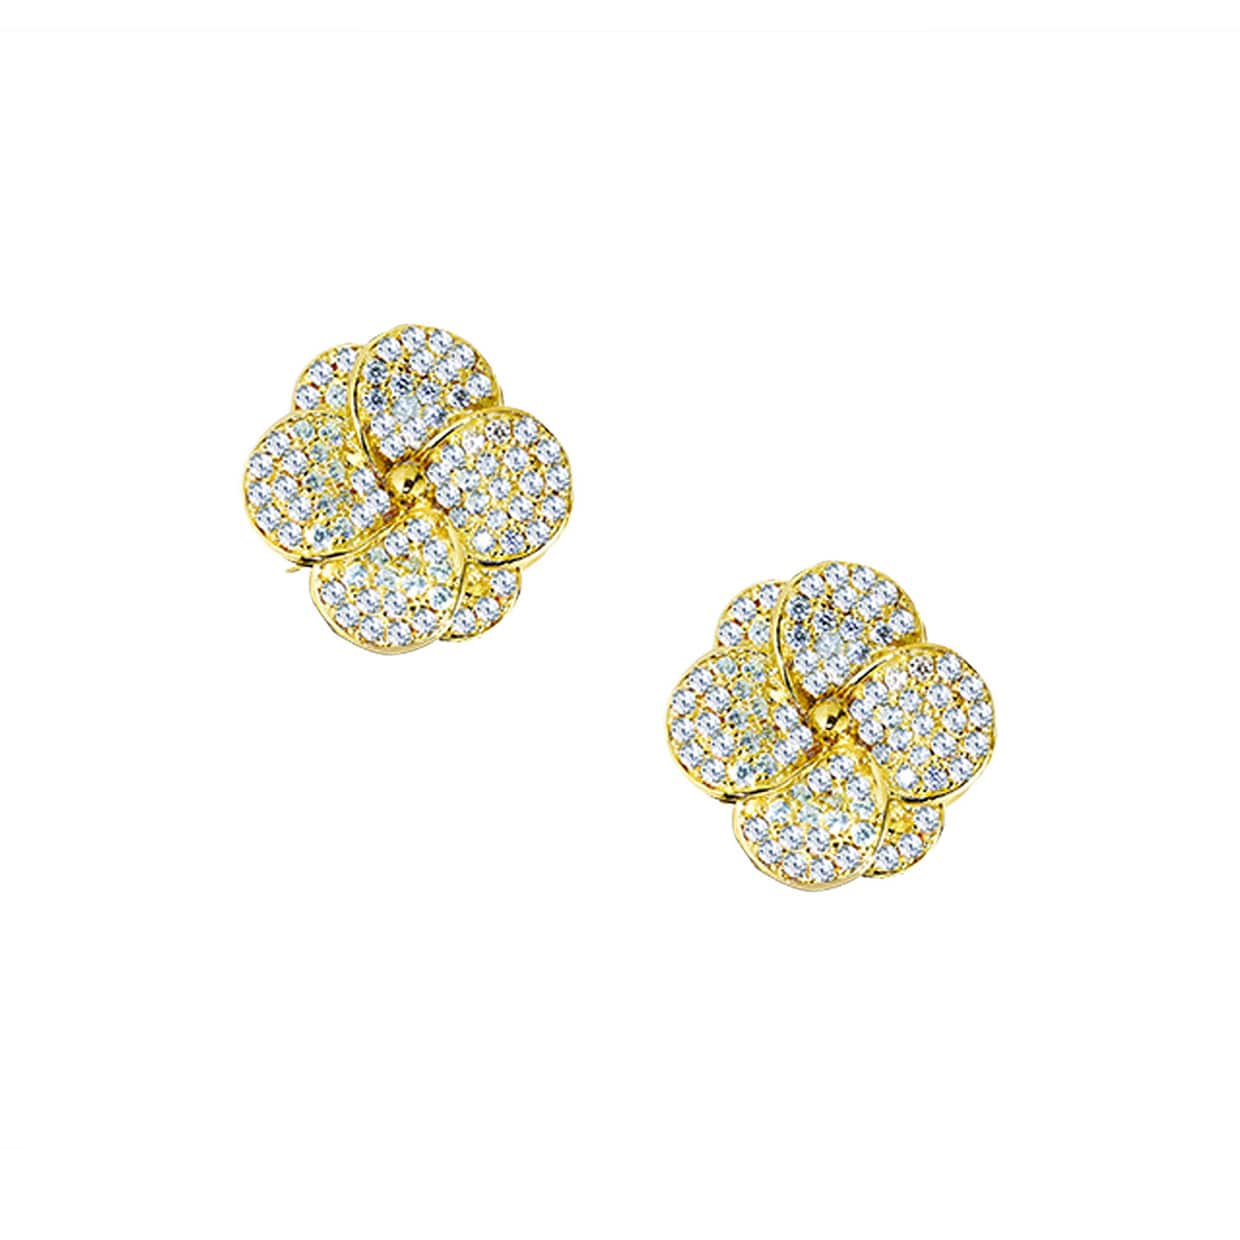 Flora Gold White Flower Earrings - Abelstedt